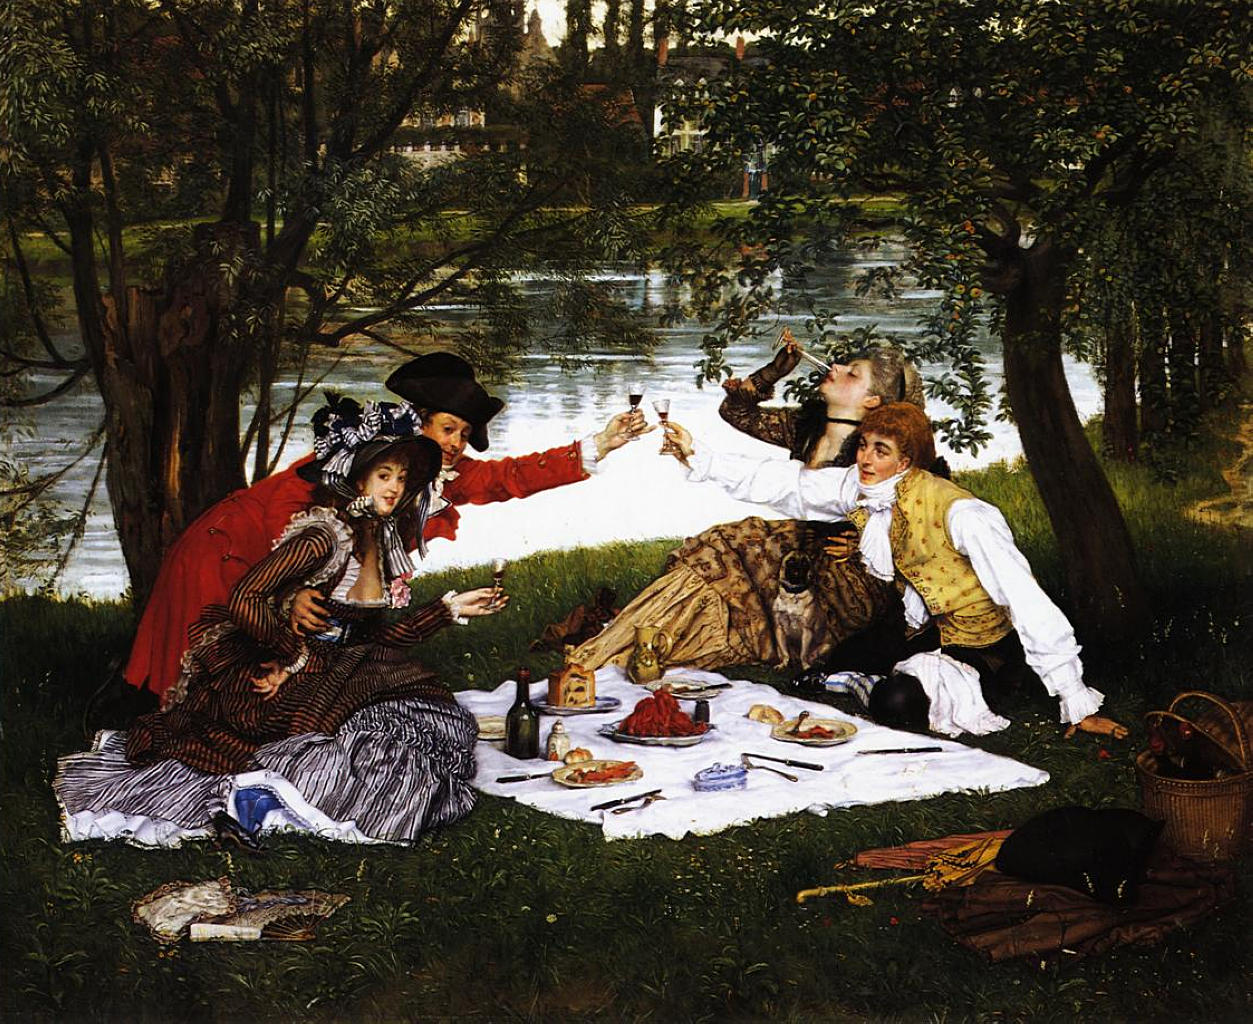 We Ranked the 10 Best Picnic Scenes in the History of Art to Inspire Your Memorial Day Festivities | Artnet News